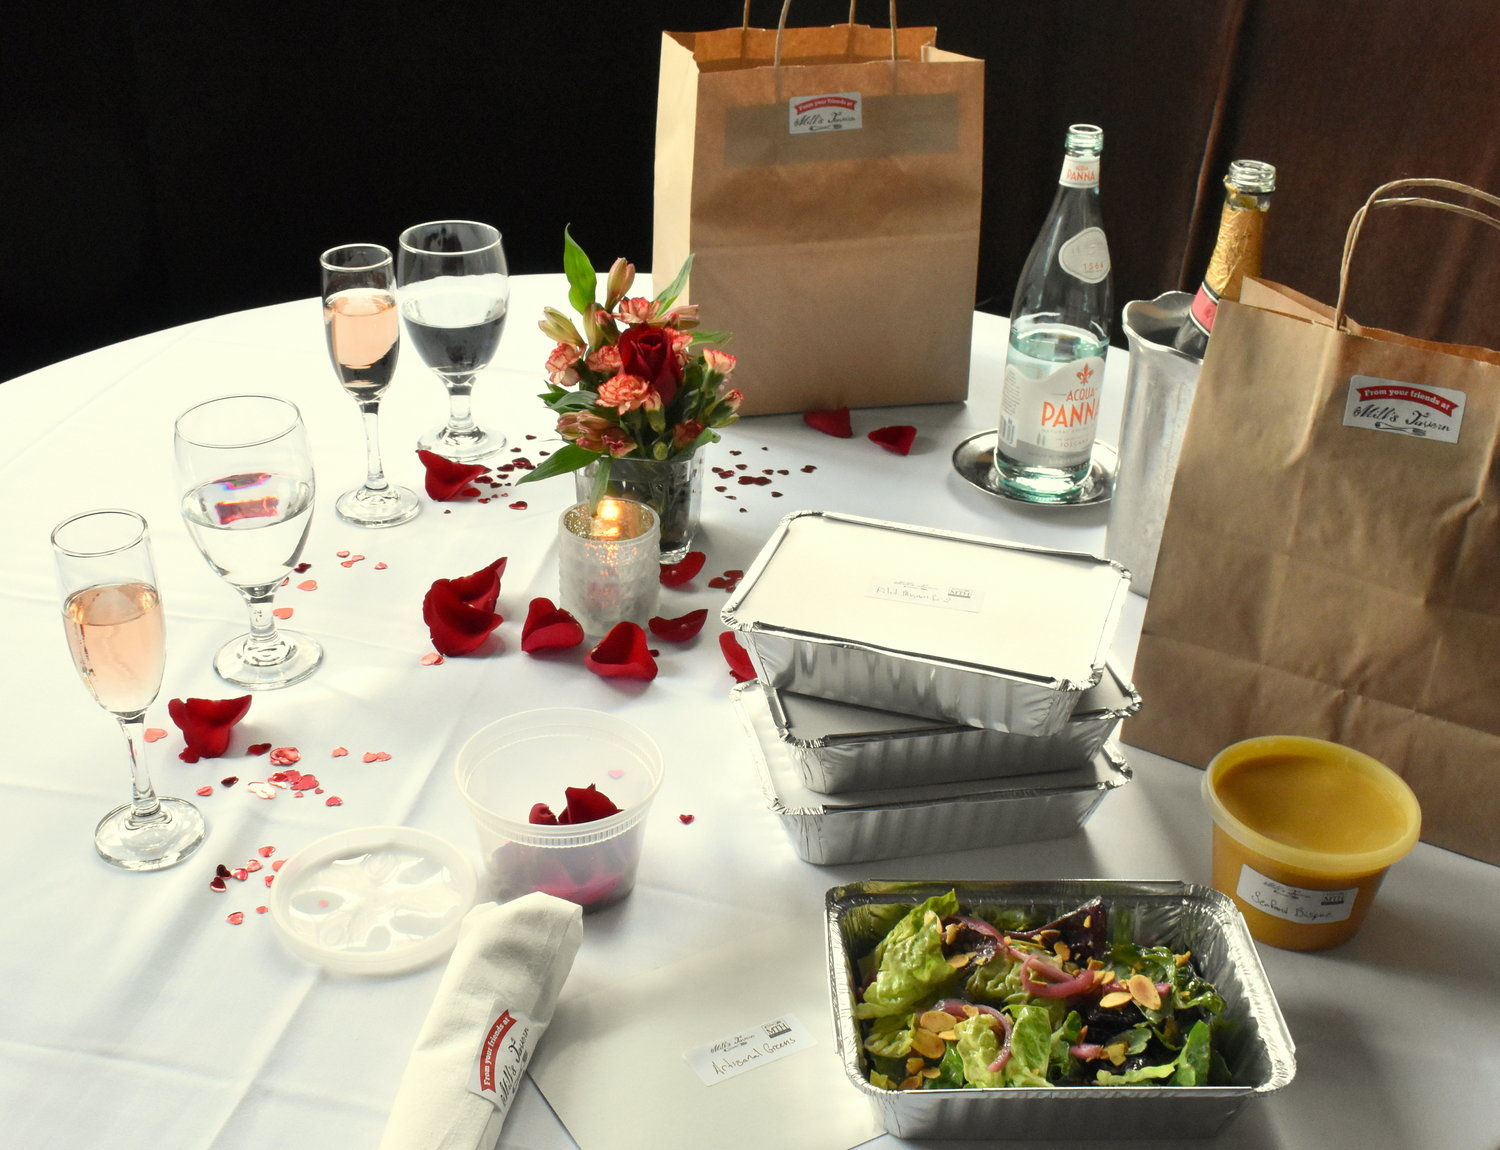 Order takeout from Mill's Tavern for a romantic dinner at home